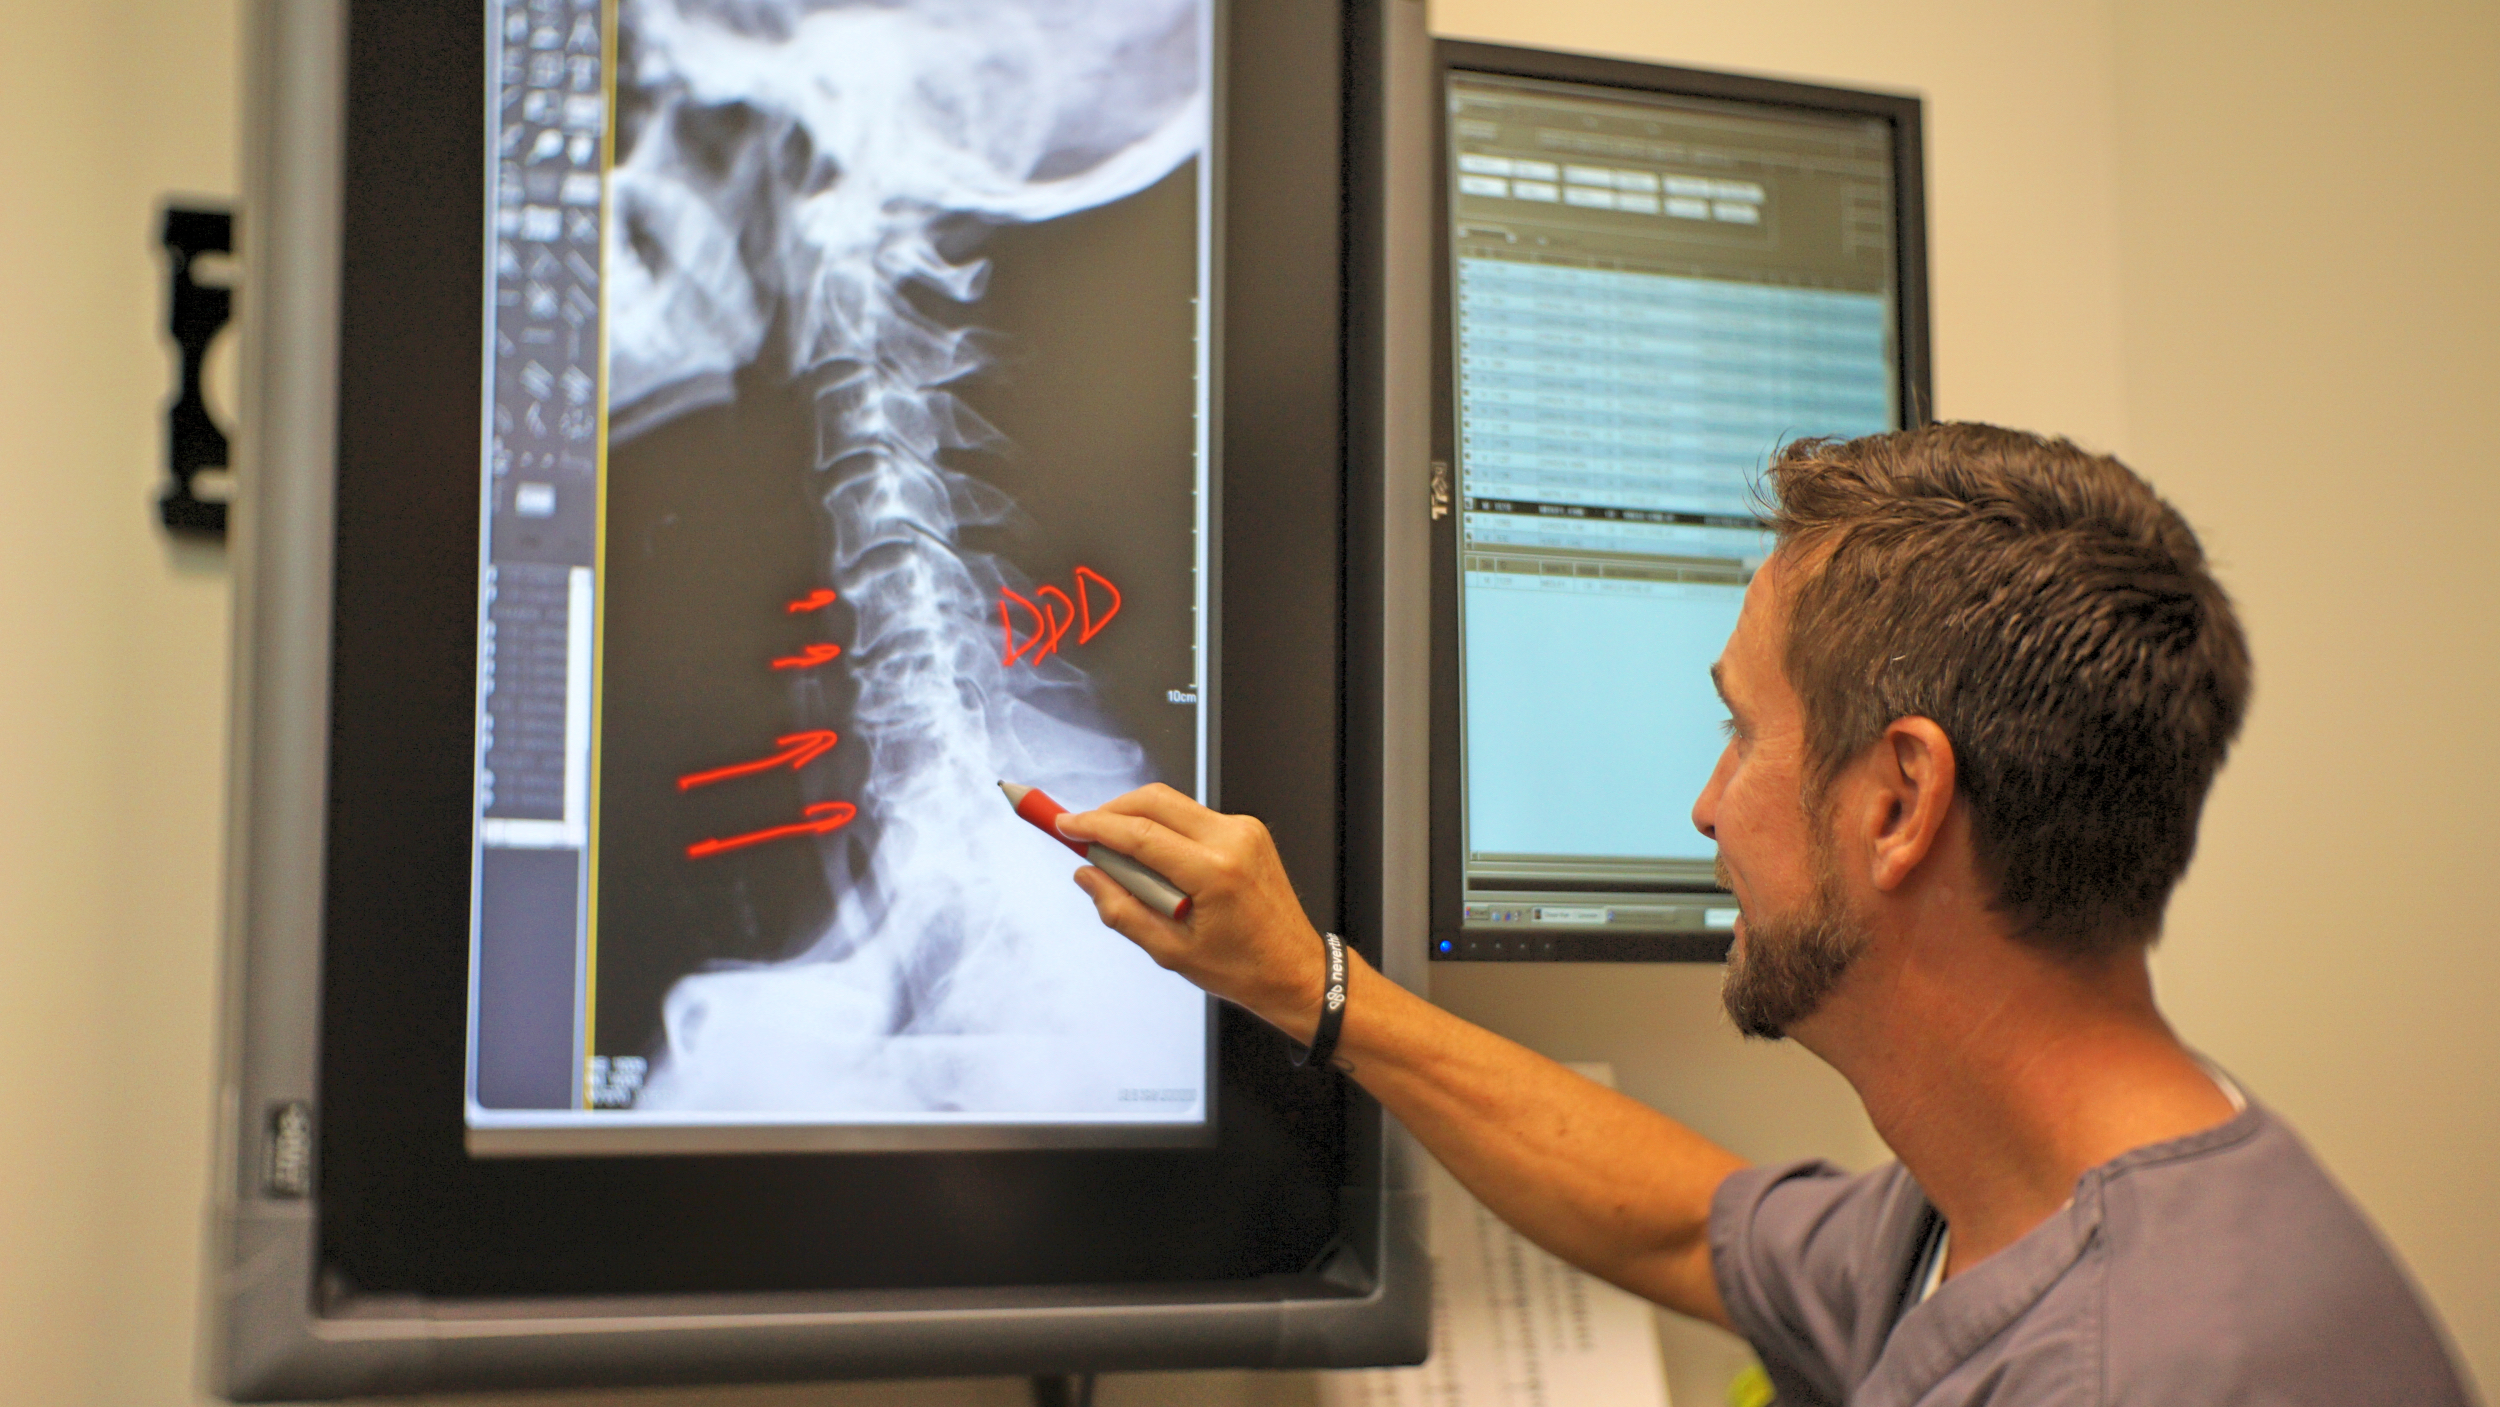 Dr. Todd reading X-rays